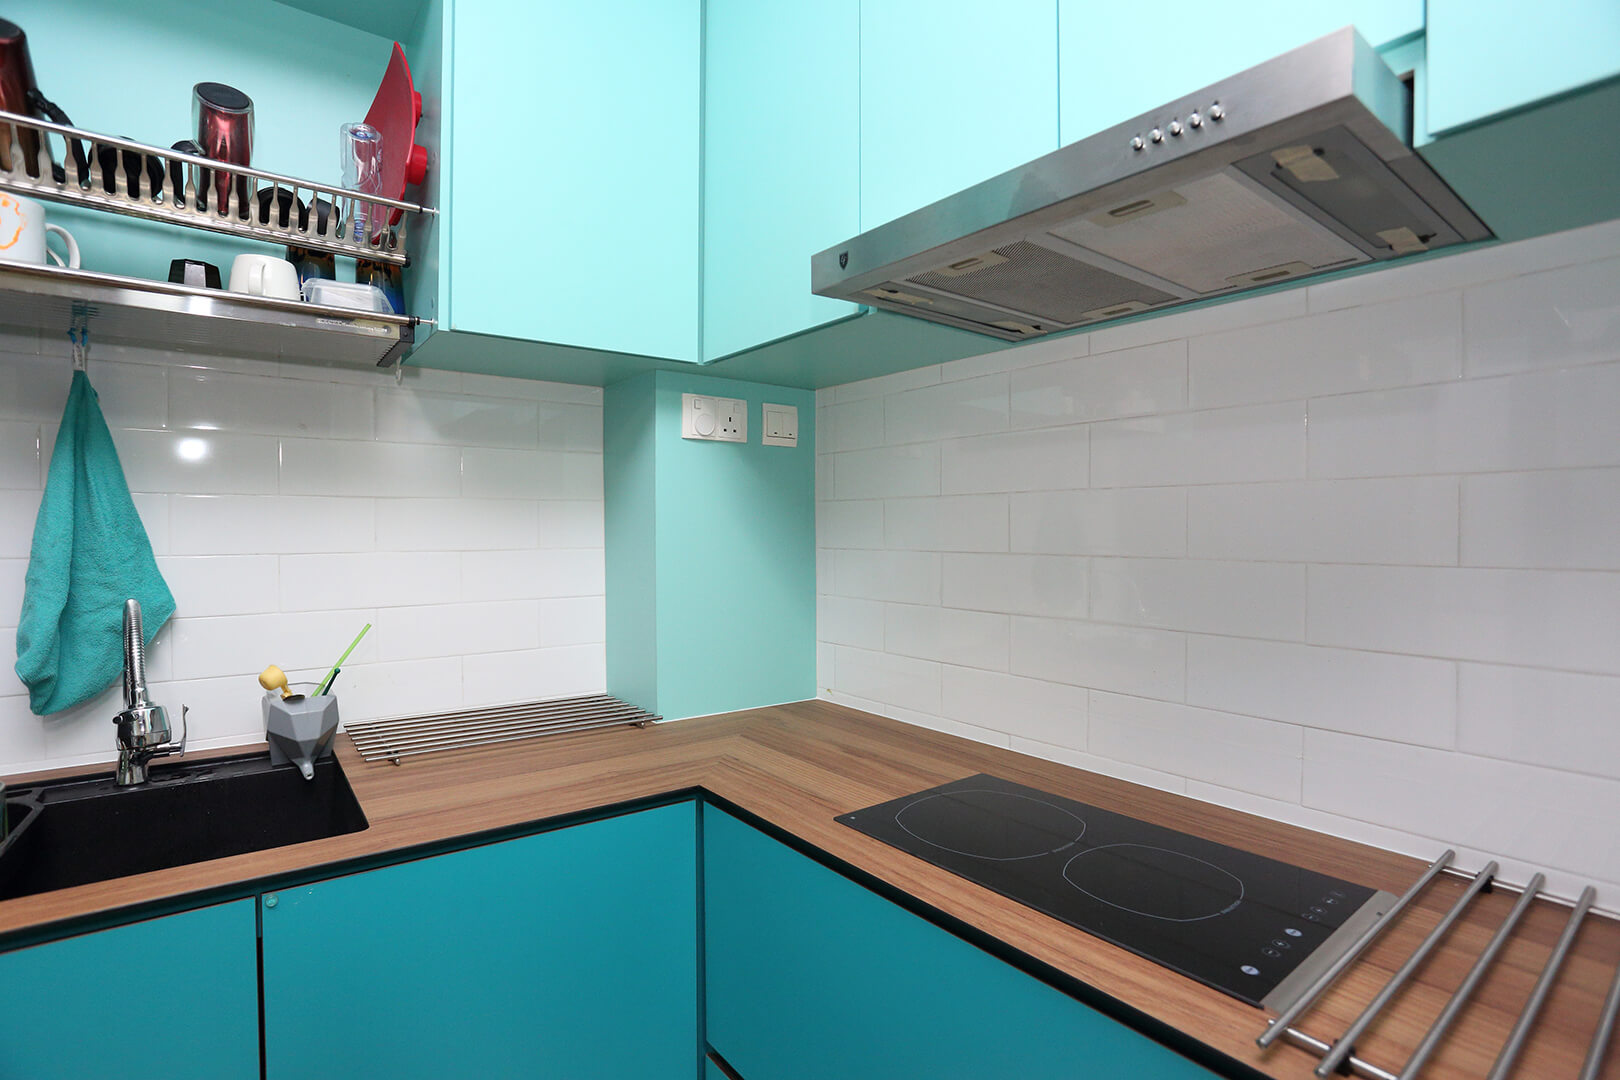 Colourful Space Interior Design Kitchen Top with Tools